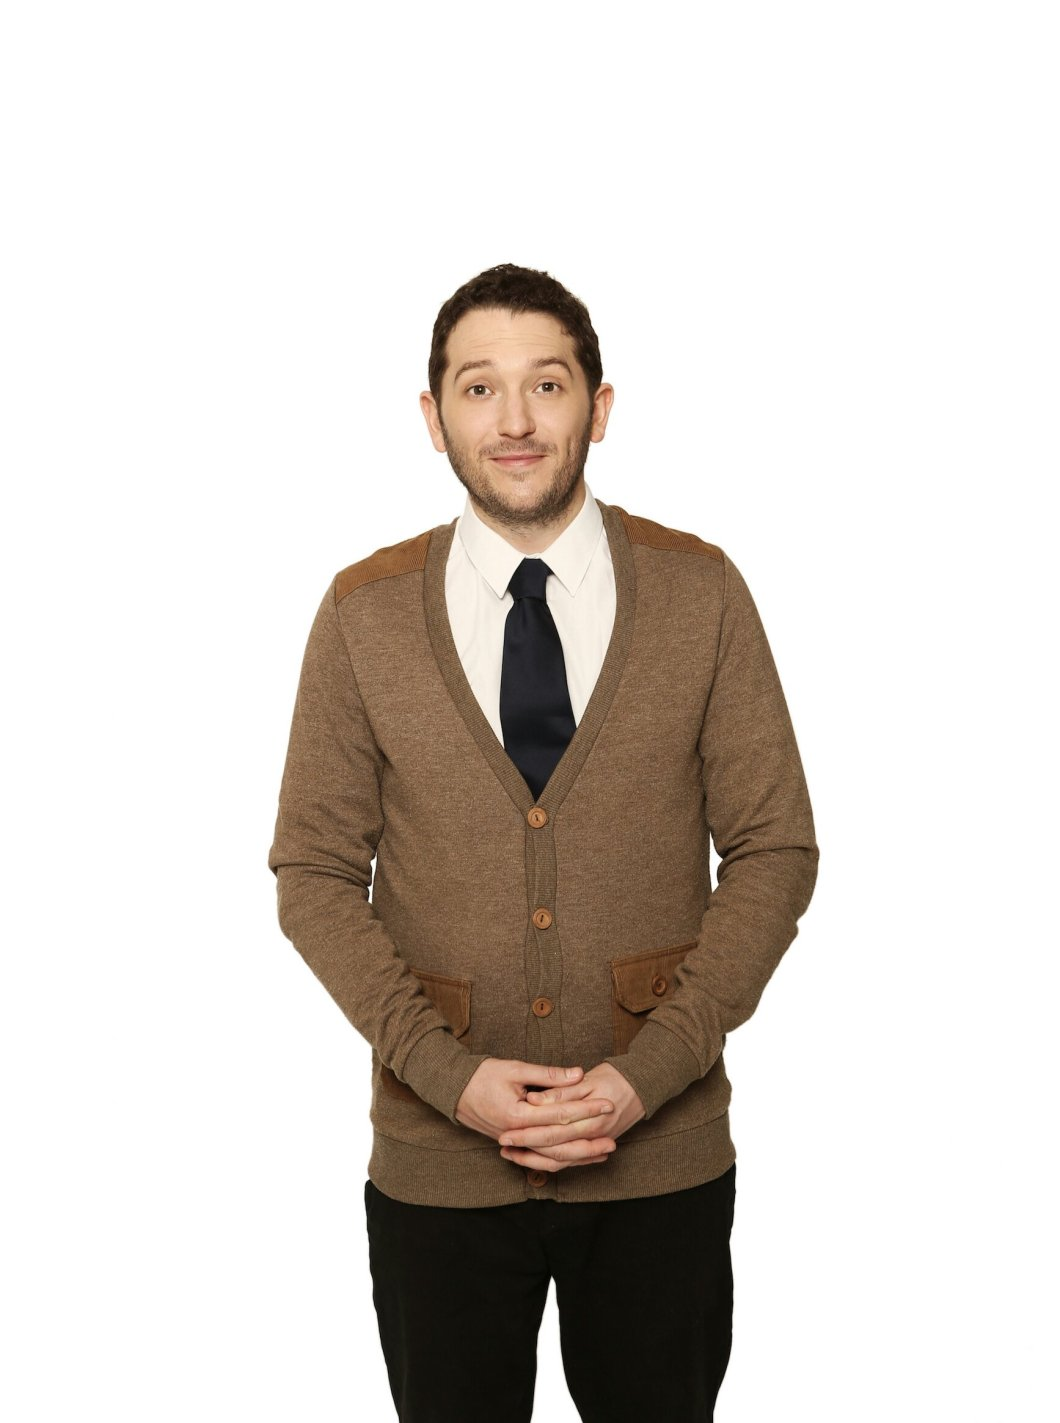 jon richardson (c) andy hollingworth archive midres-188259134..jpeg